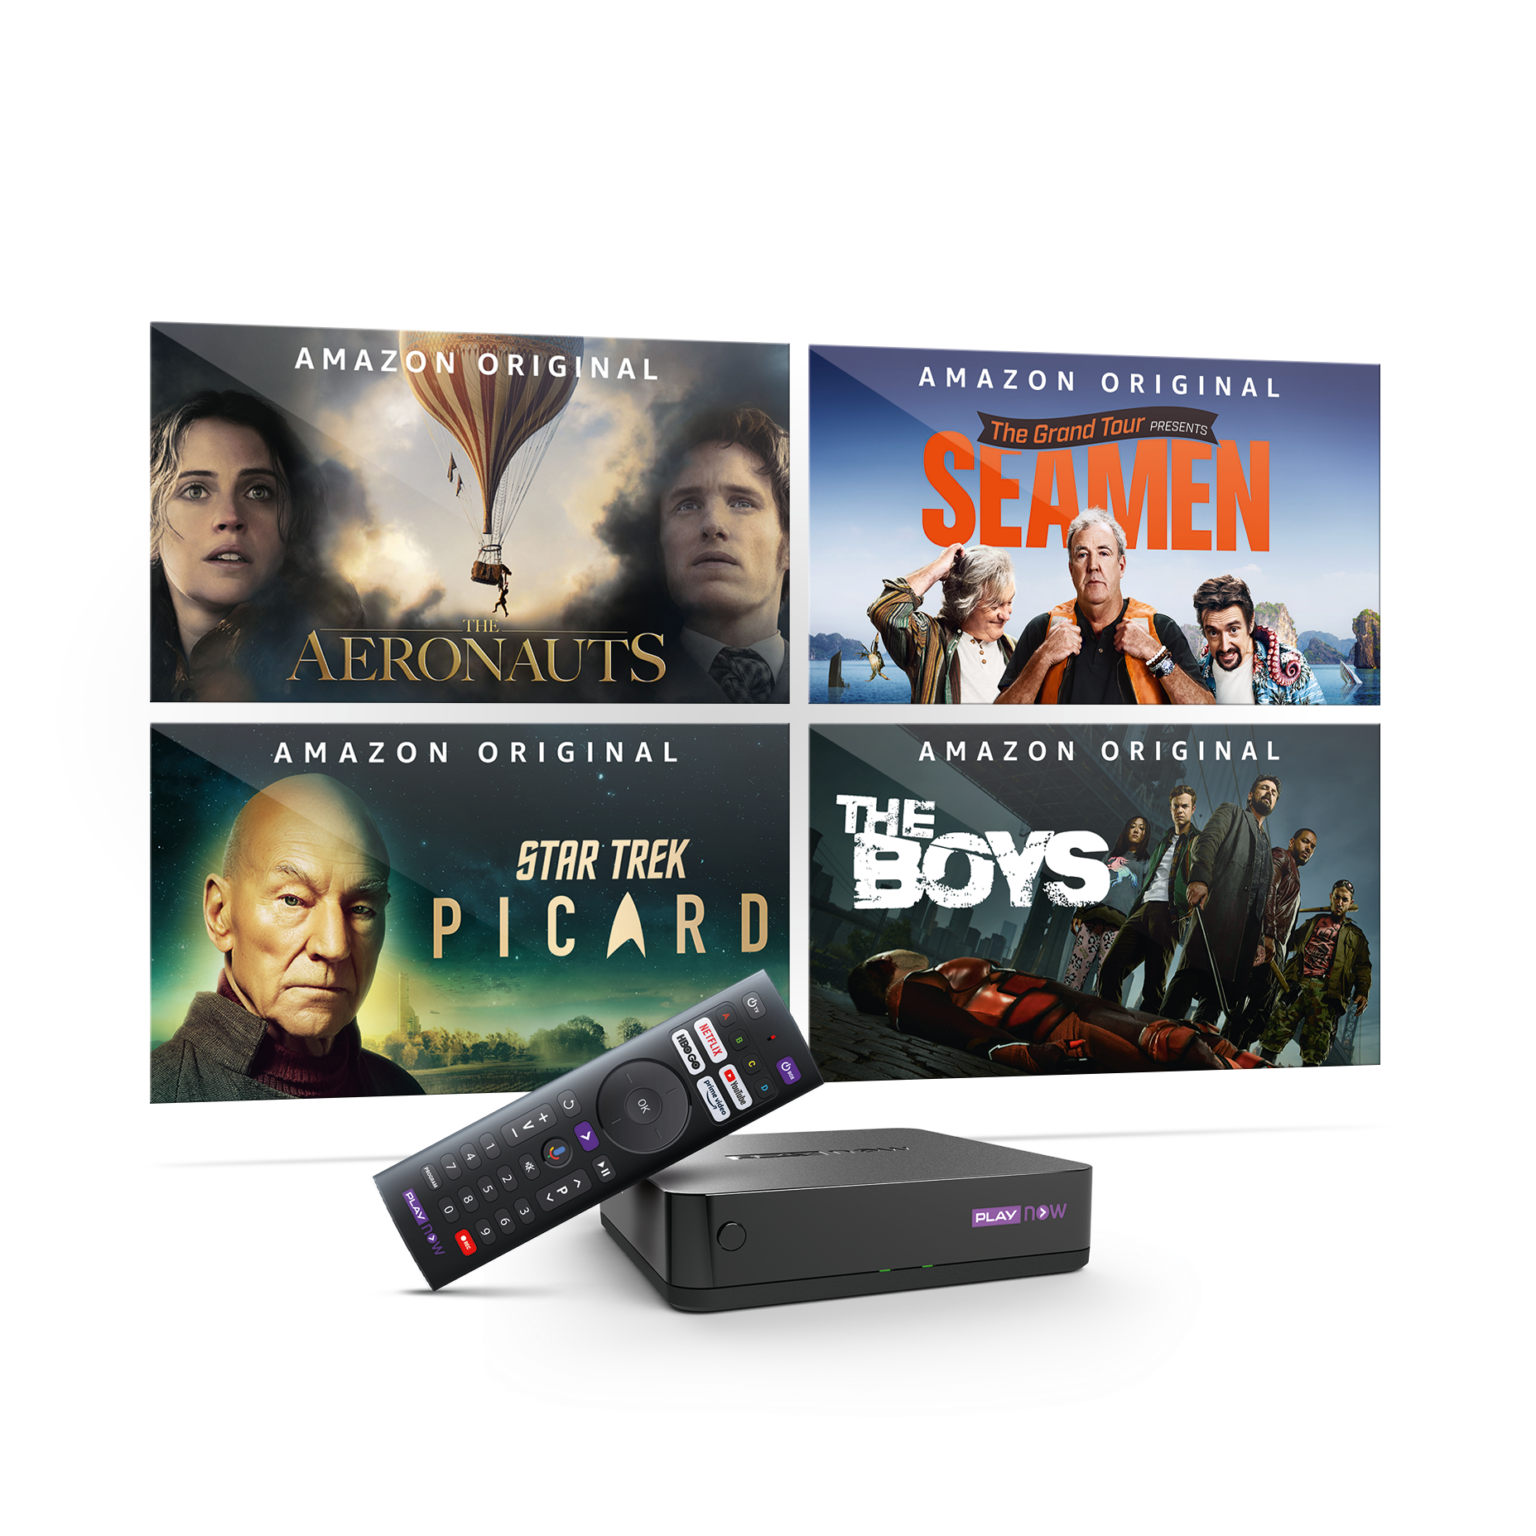 nowy play now tv box amazon prime video 1536x1536